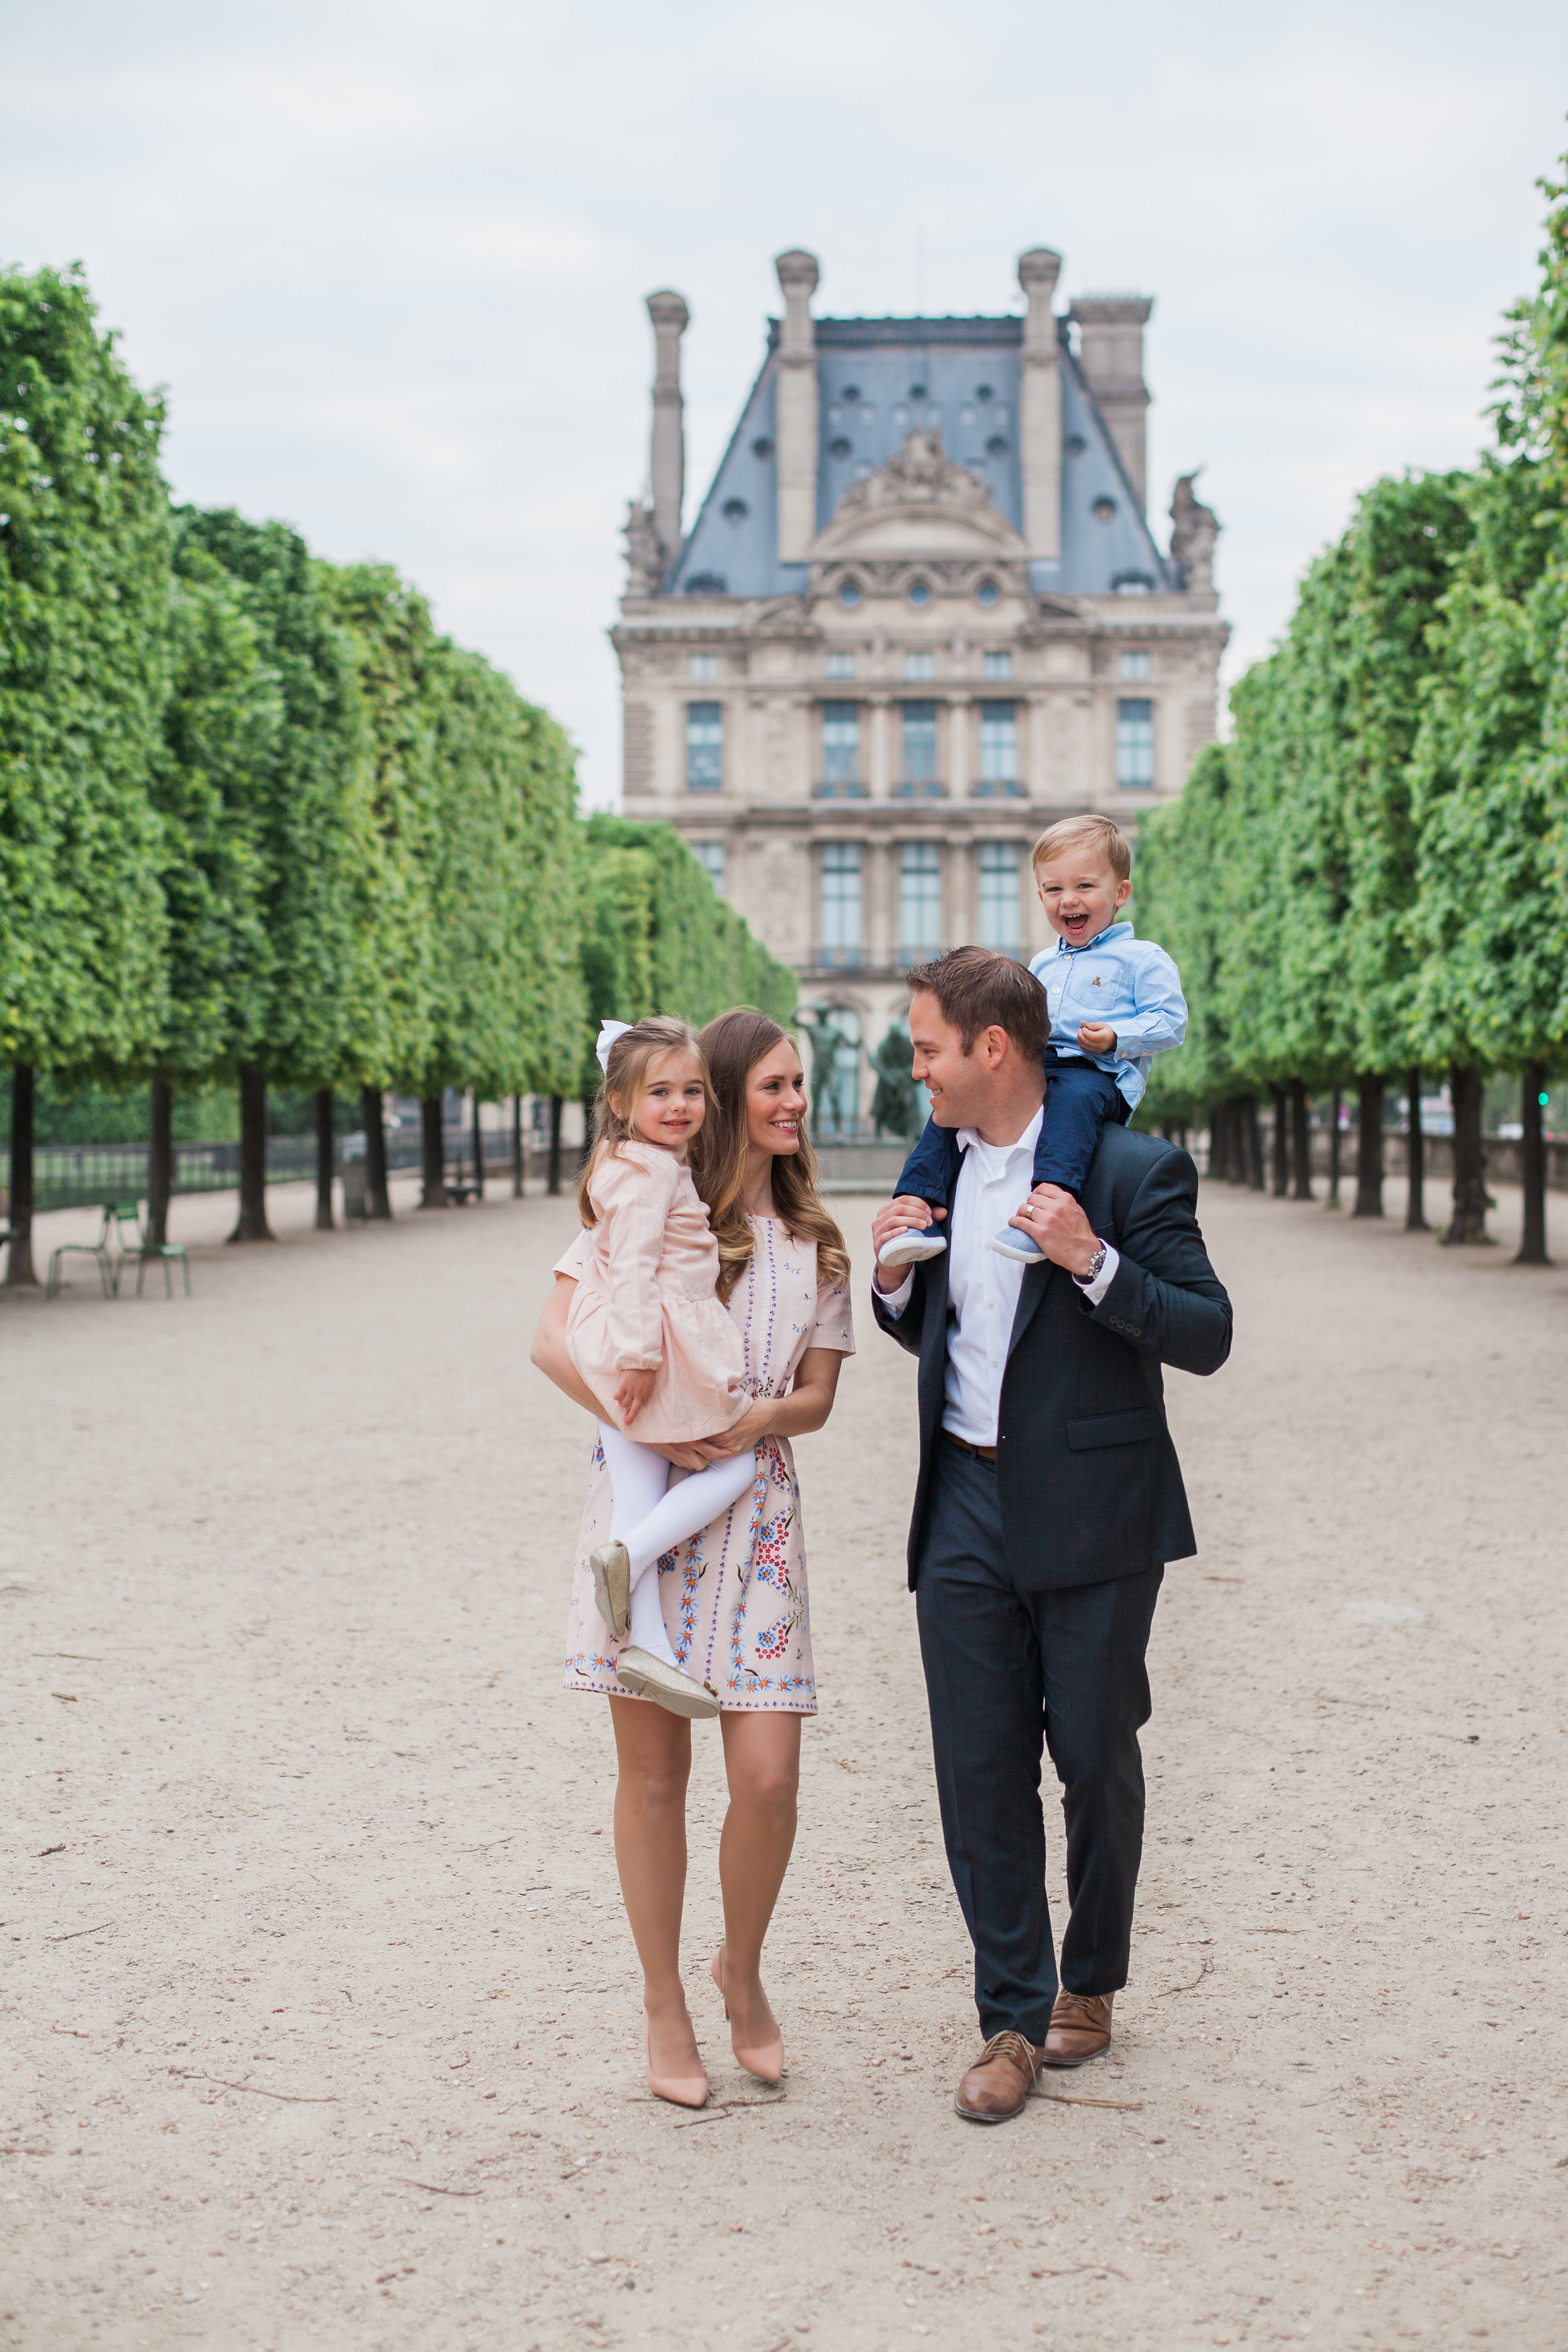 The BEST souvenir! Family Photos in the Tuileries Garden in Paris, France. Photo by  Michelle Wever Photography .